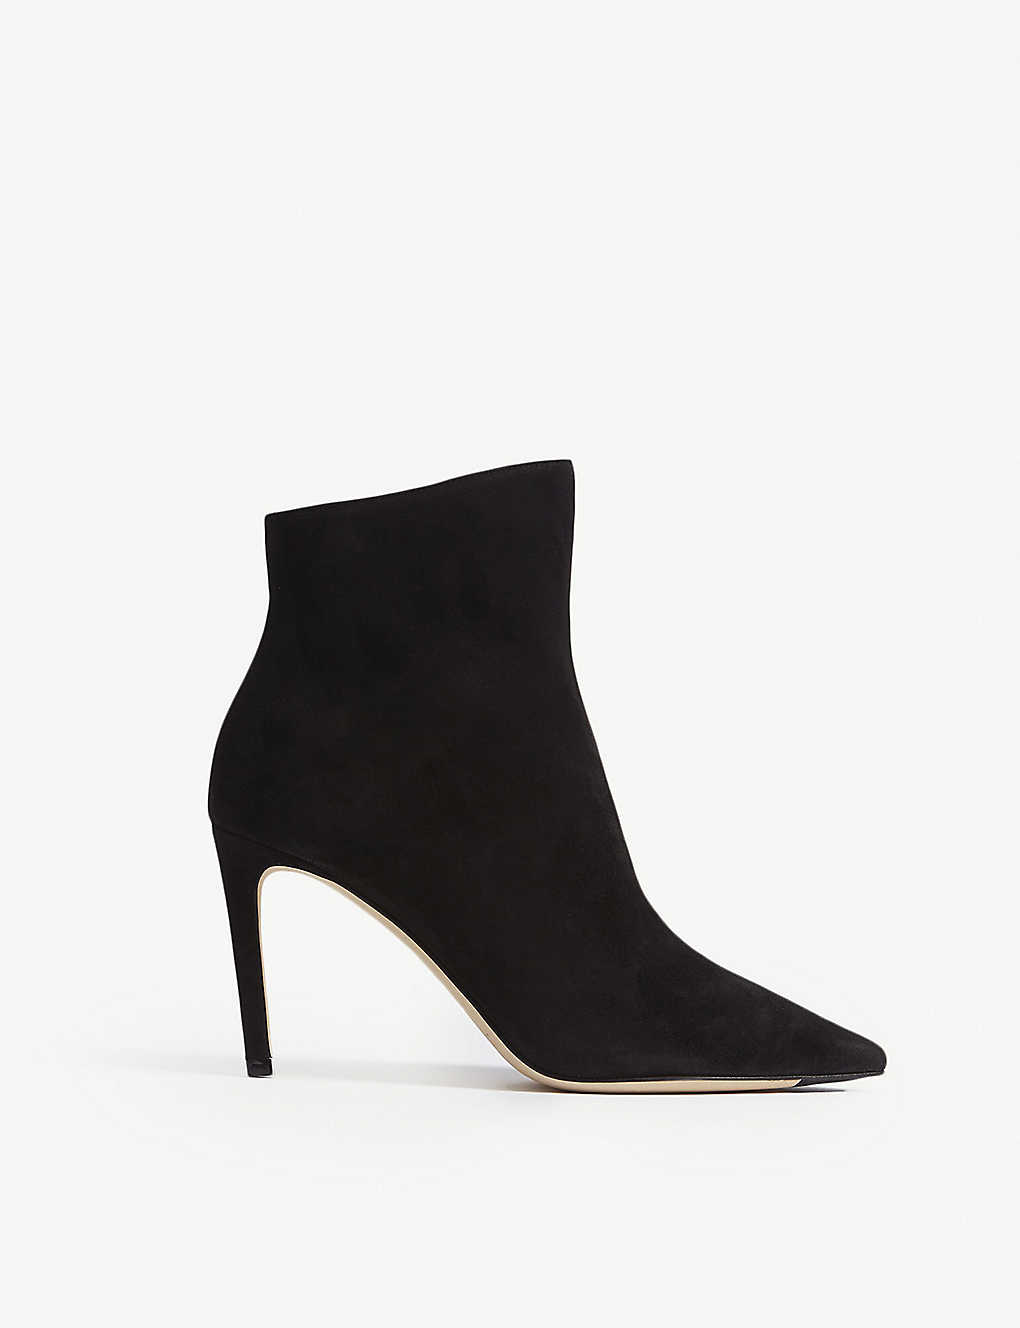 75defd259556 JIMMY CHOO - Helaine 85 suede ankle boots